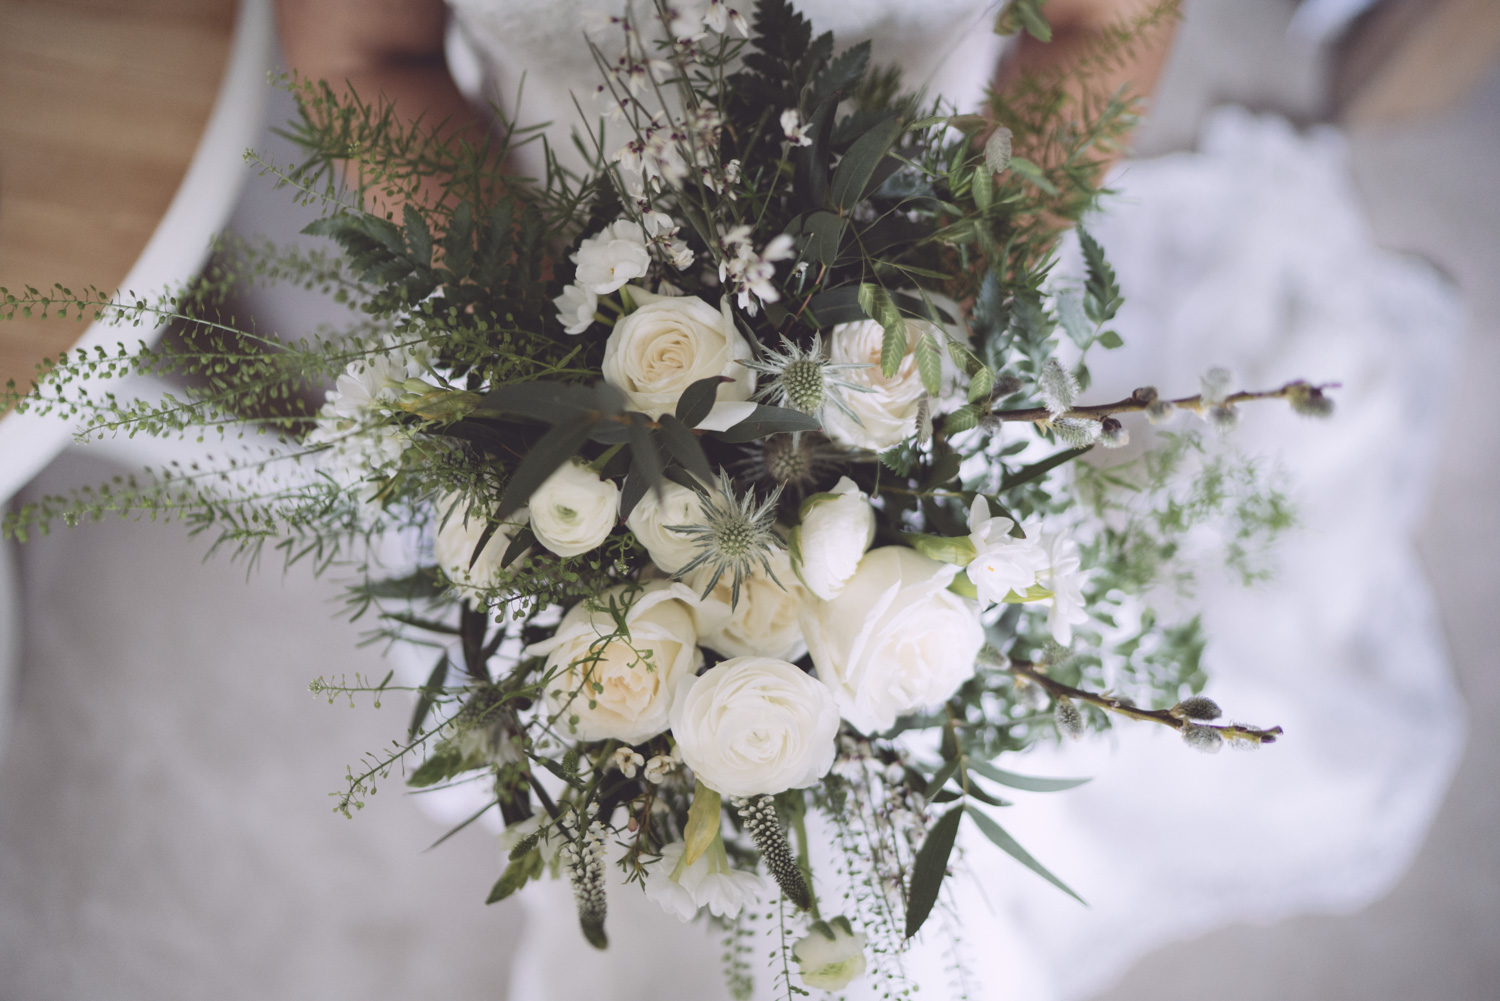 Bridal bouquet by Clock Dandelion Photo by Tim Zolte